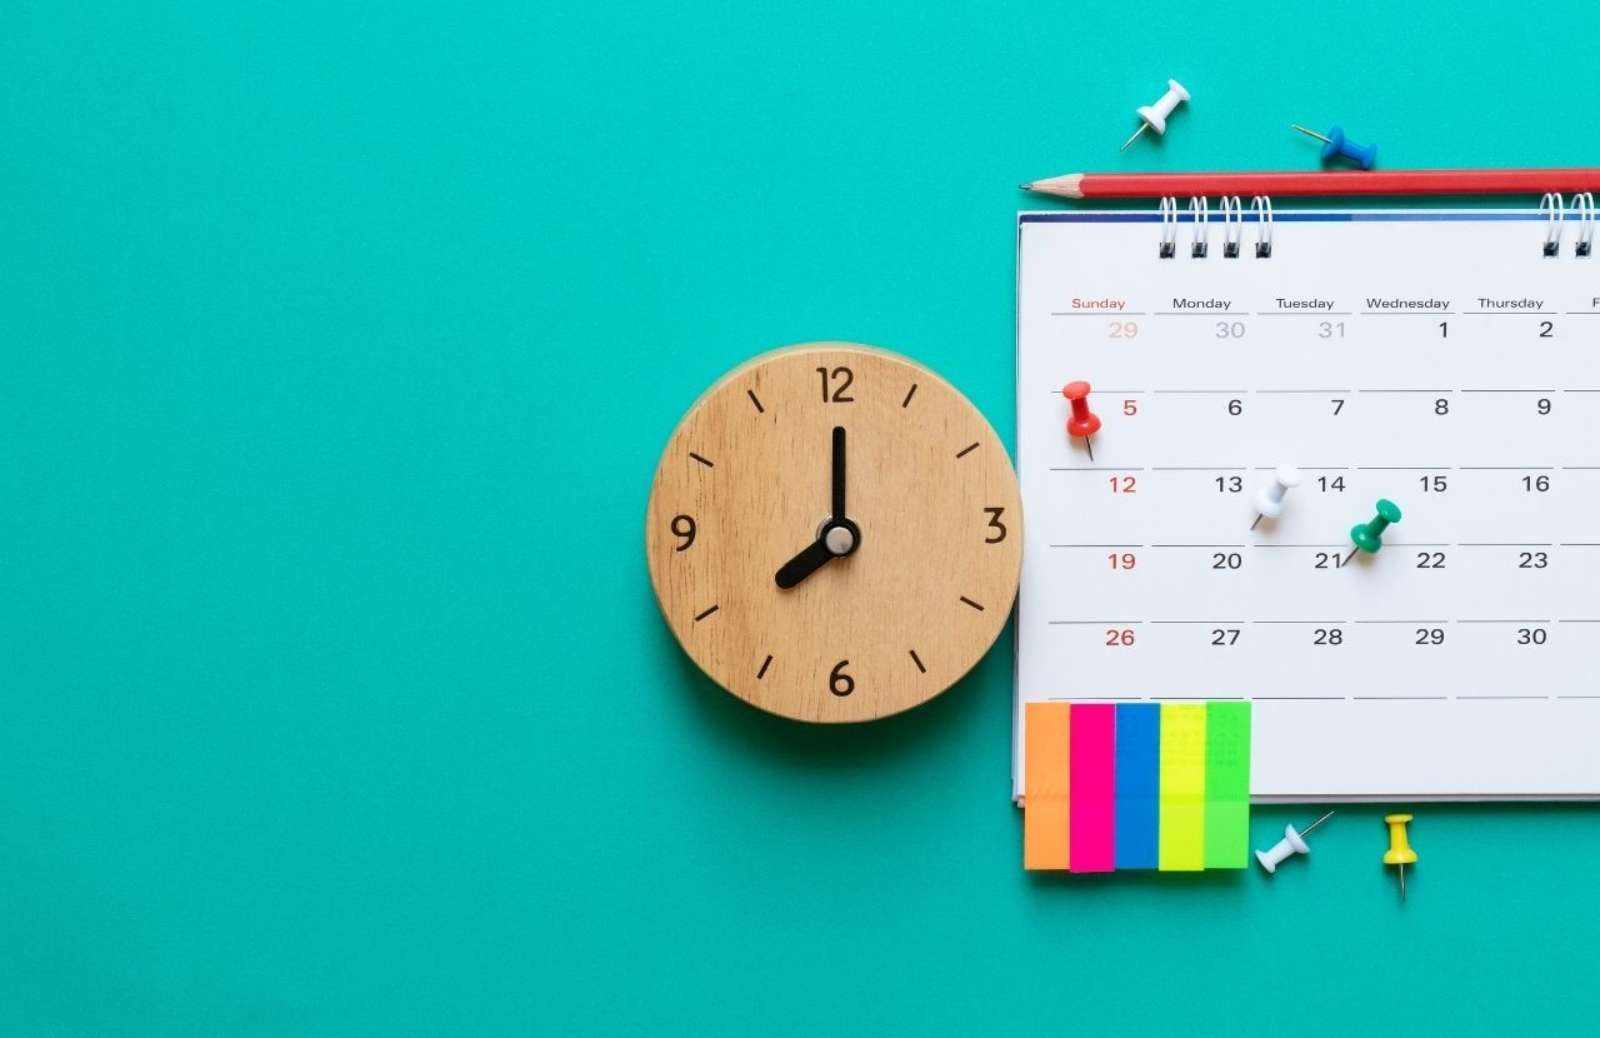 Clock, calendar, and post-it notes on a blue background